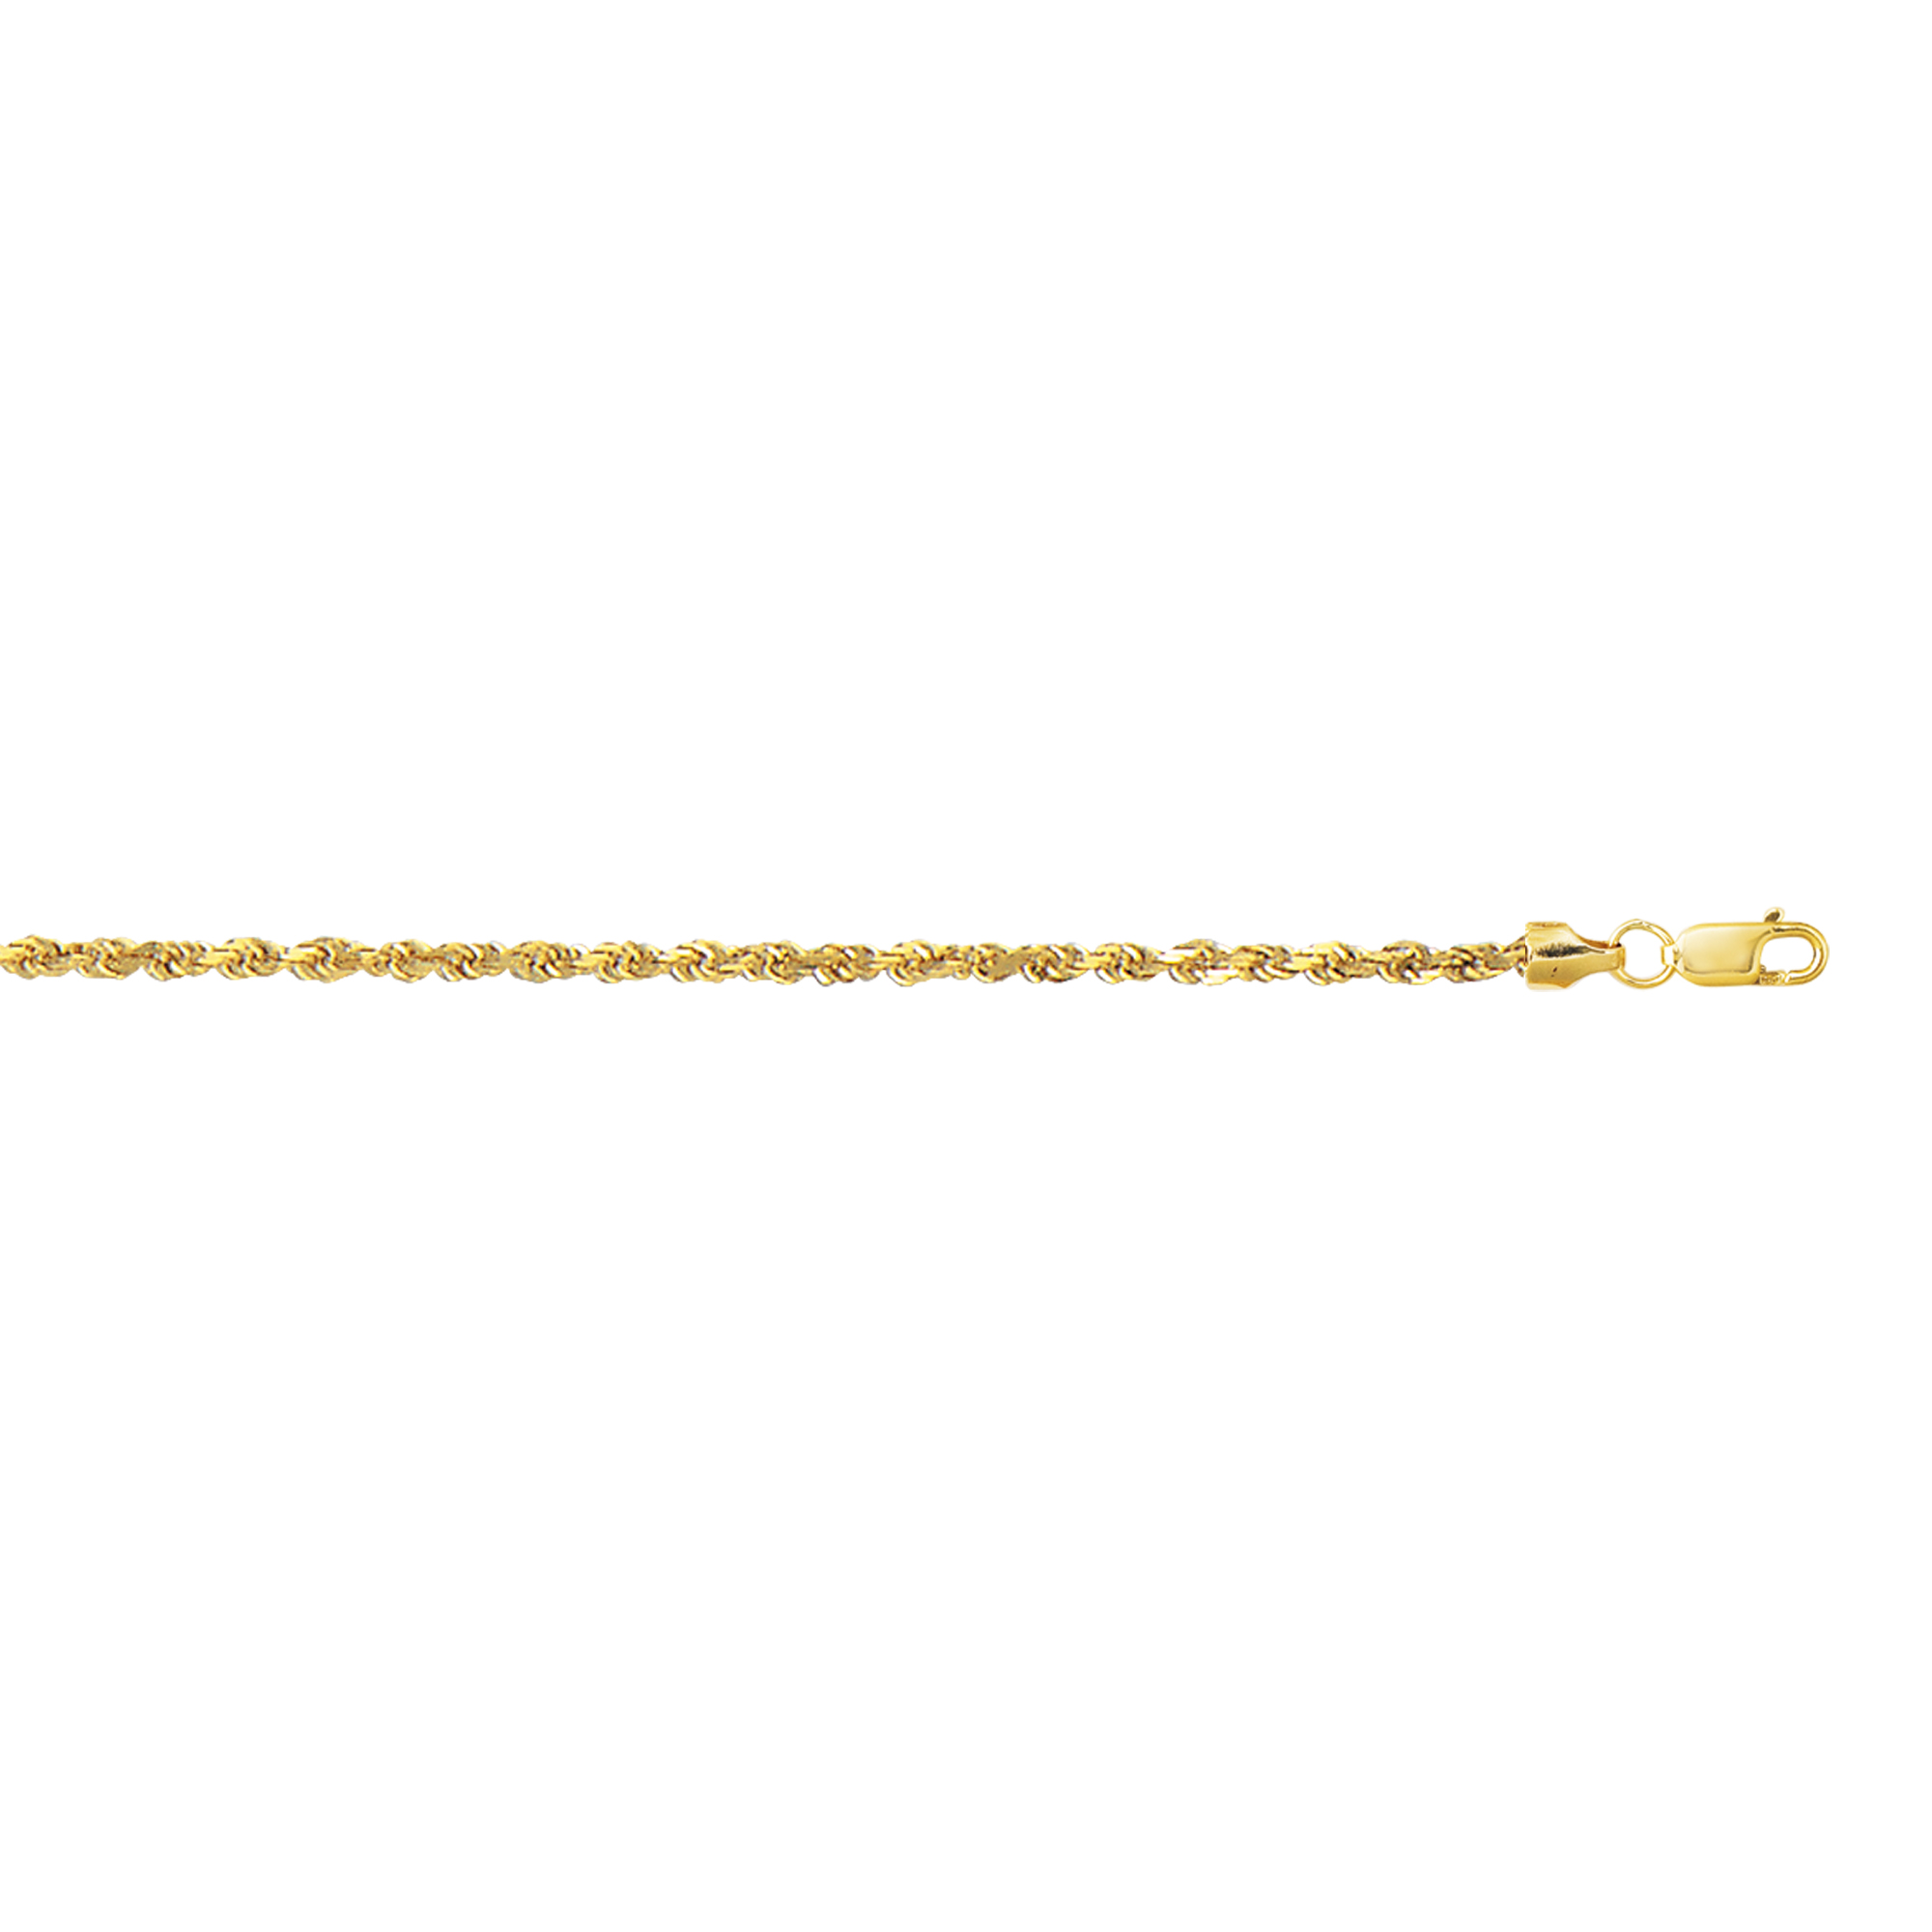 10K 24 inches Yellow Gold 2.5mm Diamond Cut Hollow Sparkle Rope Chain with Lobster Clasp